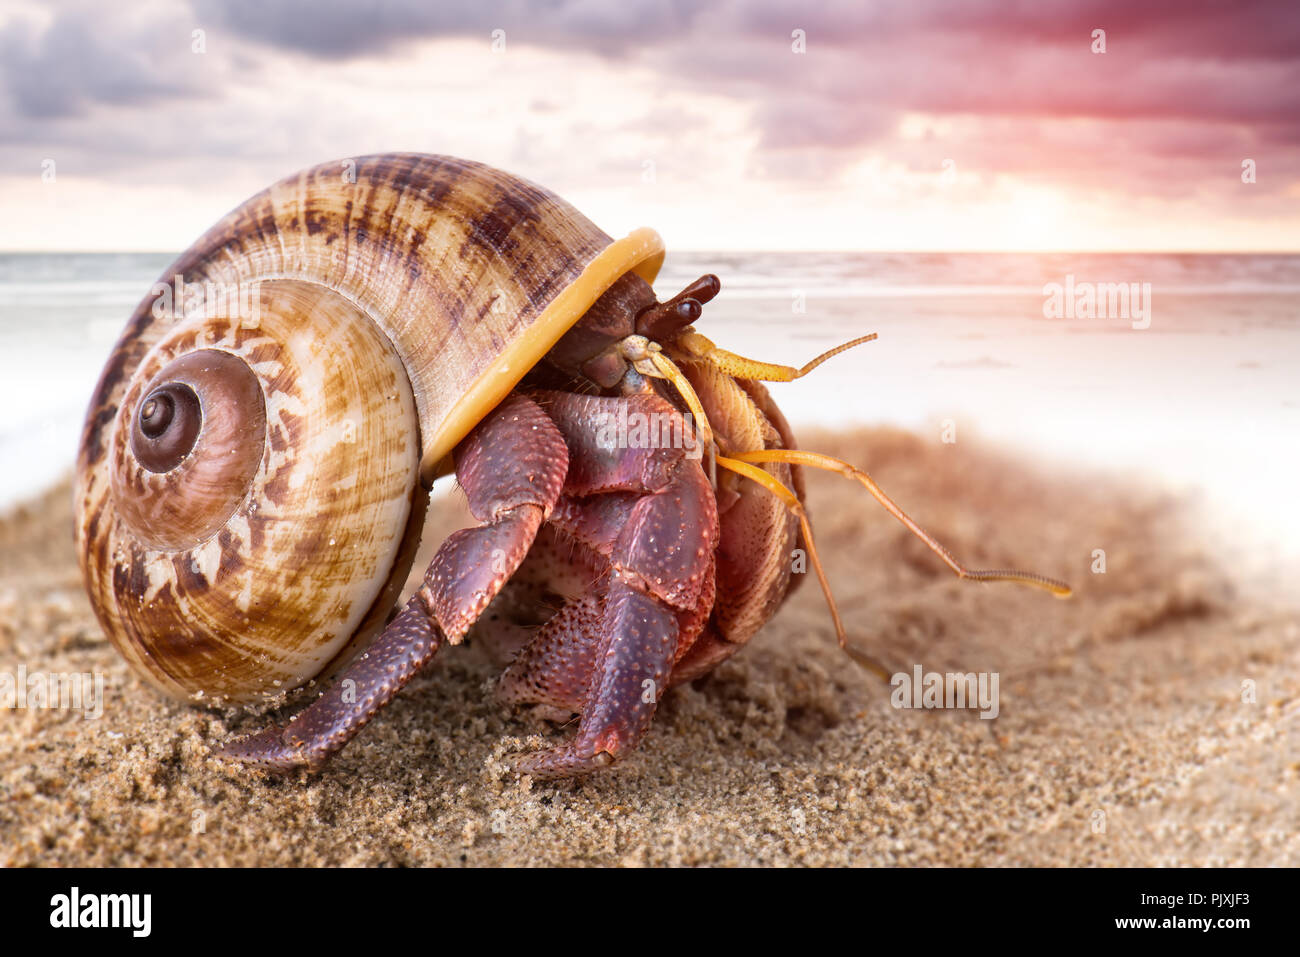 Colorful hermit crab on the beach sand and sea background. - Stock Image